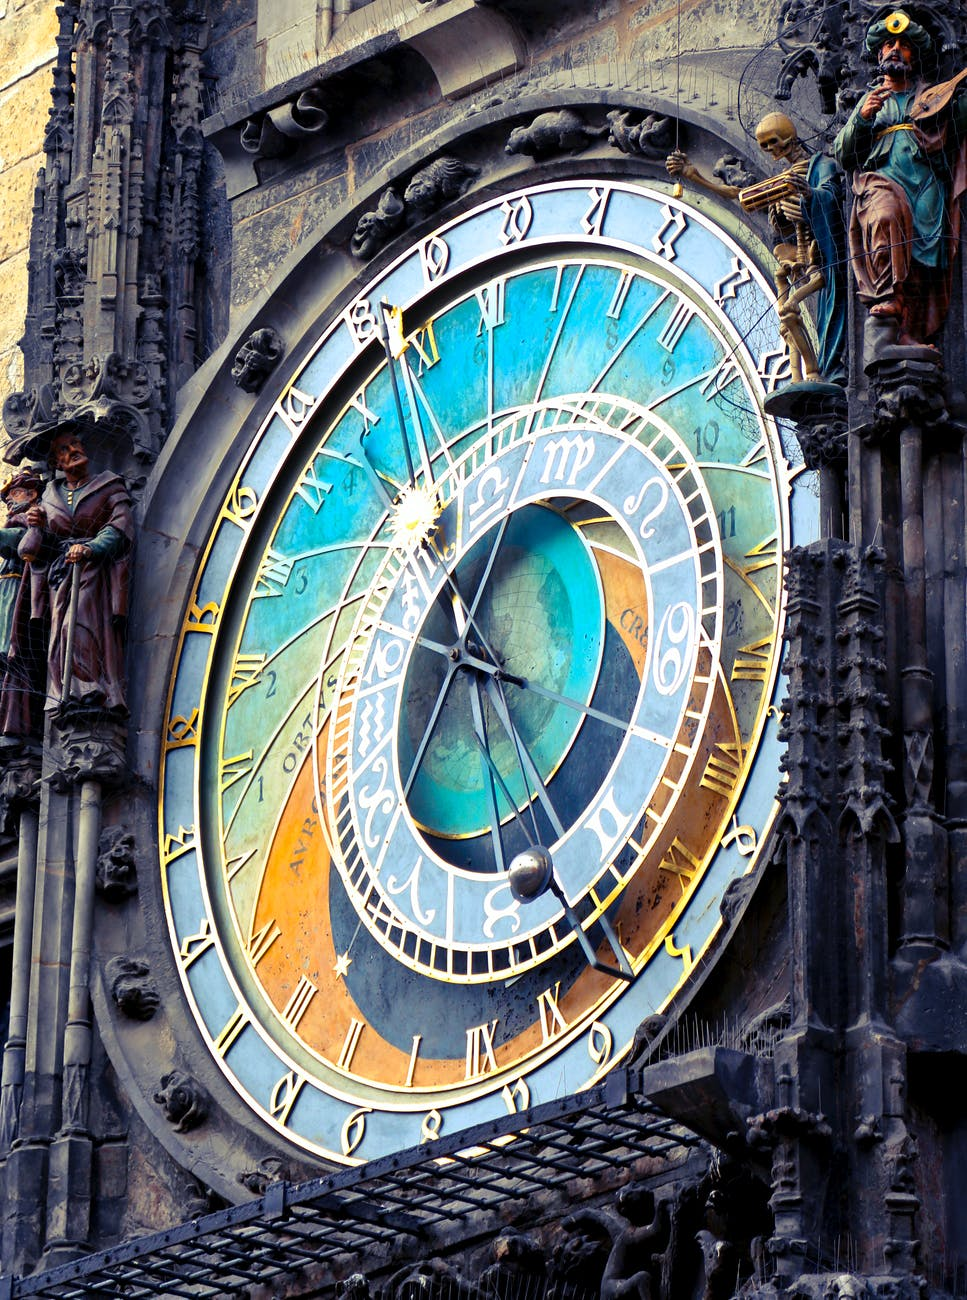 Learning about the History of Astrology - Astrologyical Clock in Prague